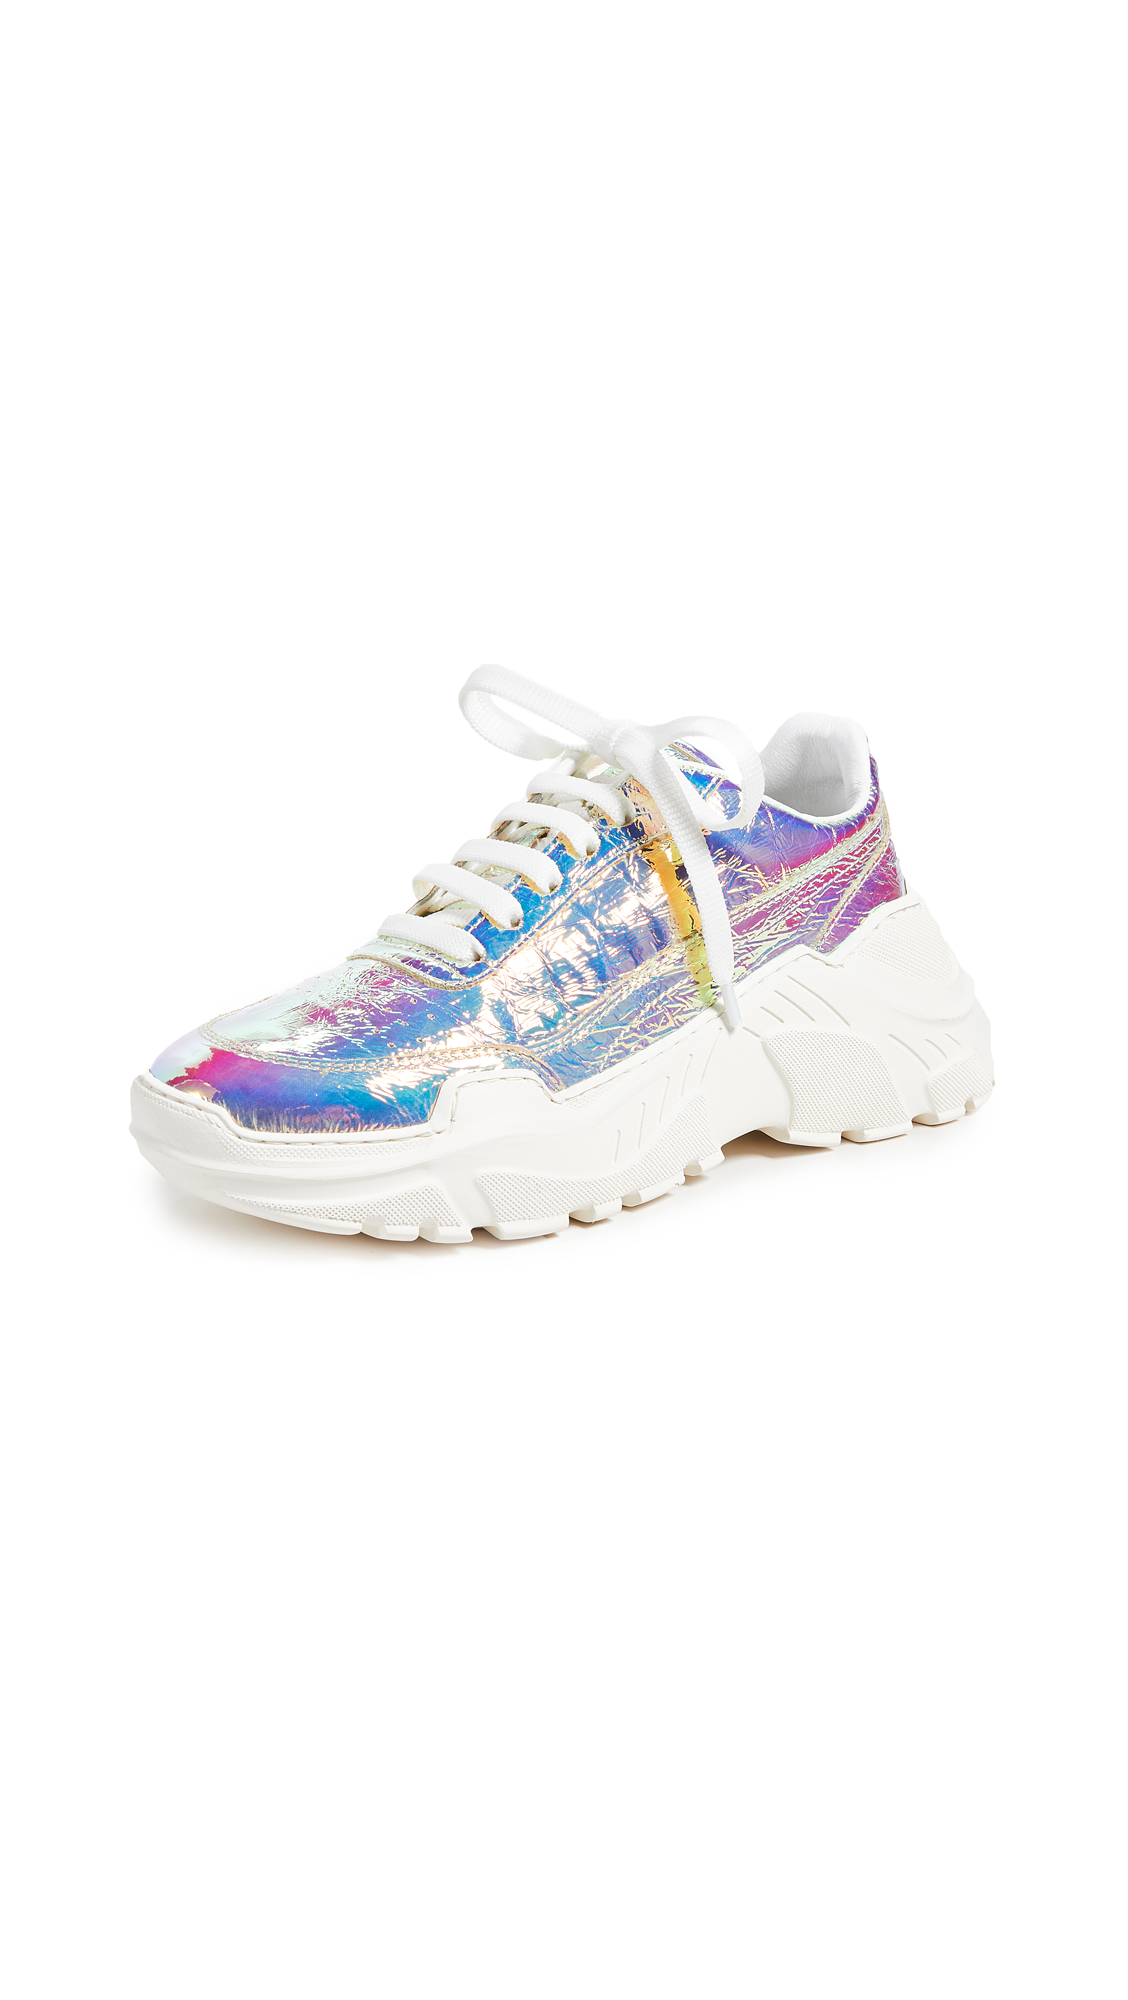 Joshua Sanders Zenith Lace Up Sneakers - Light Holo